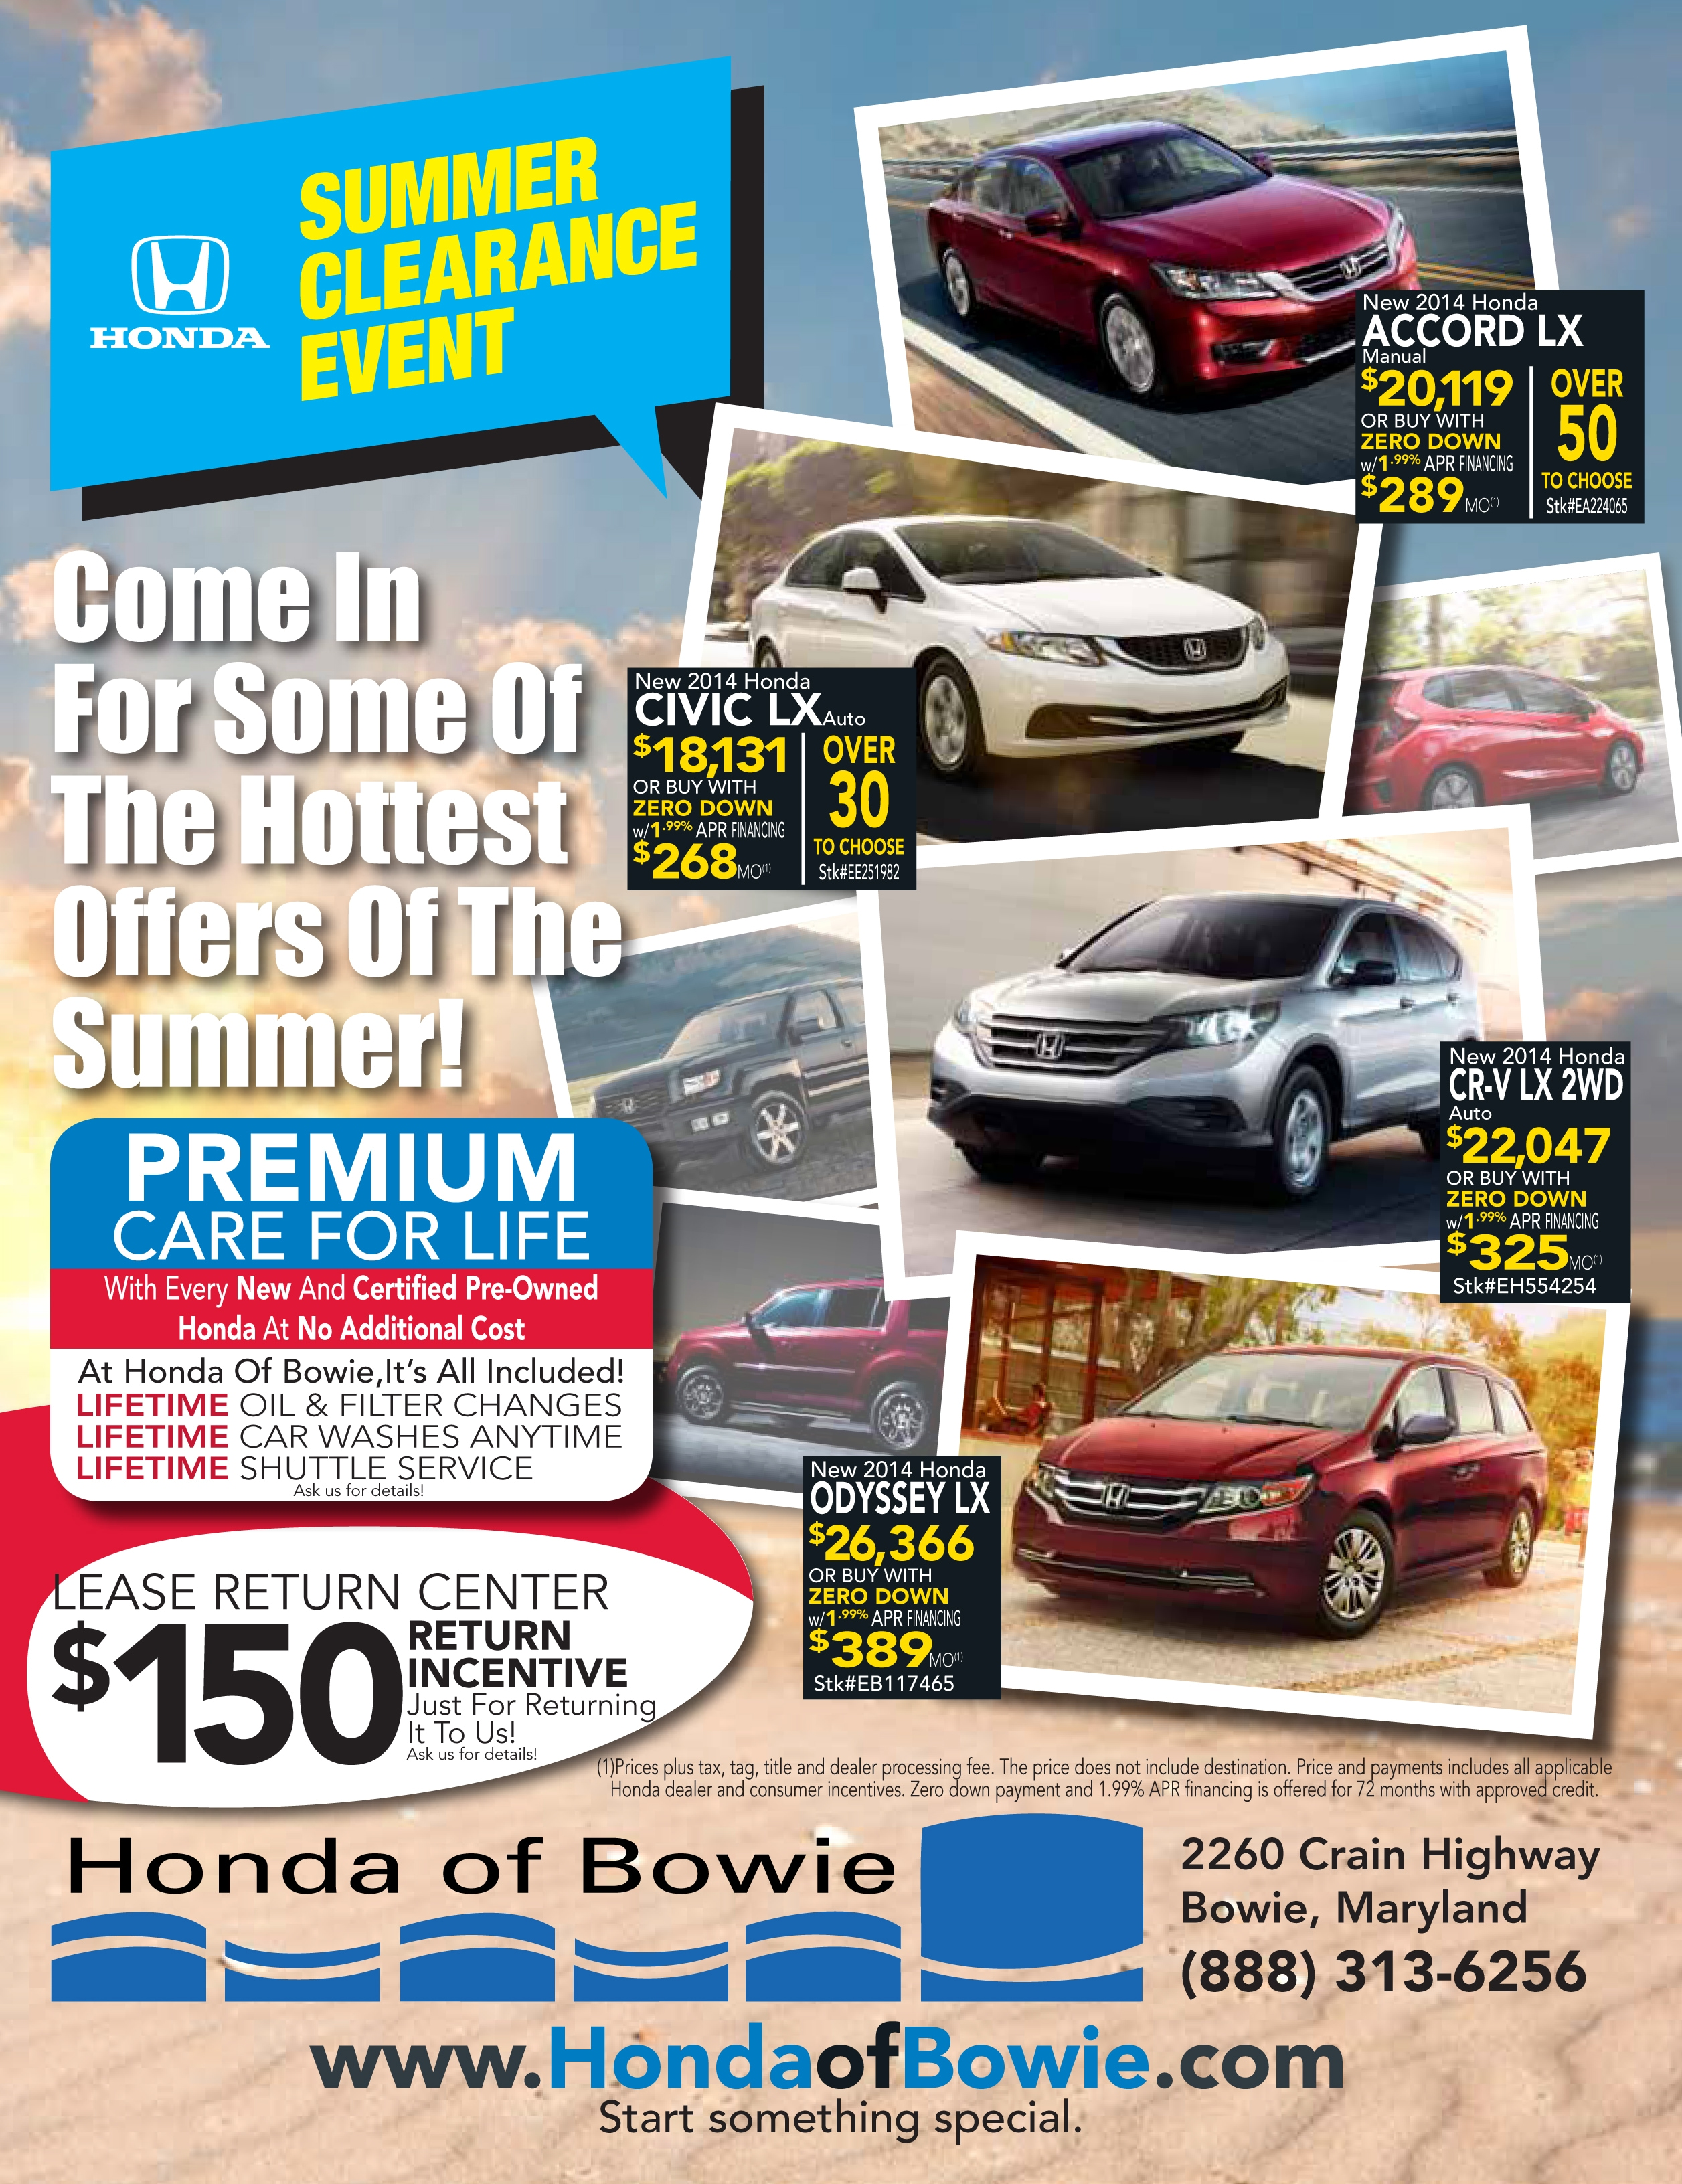 Beautiful Honda Of Bowie Summer Clearance Event